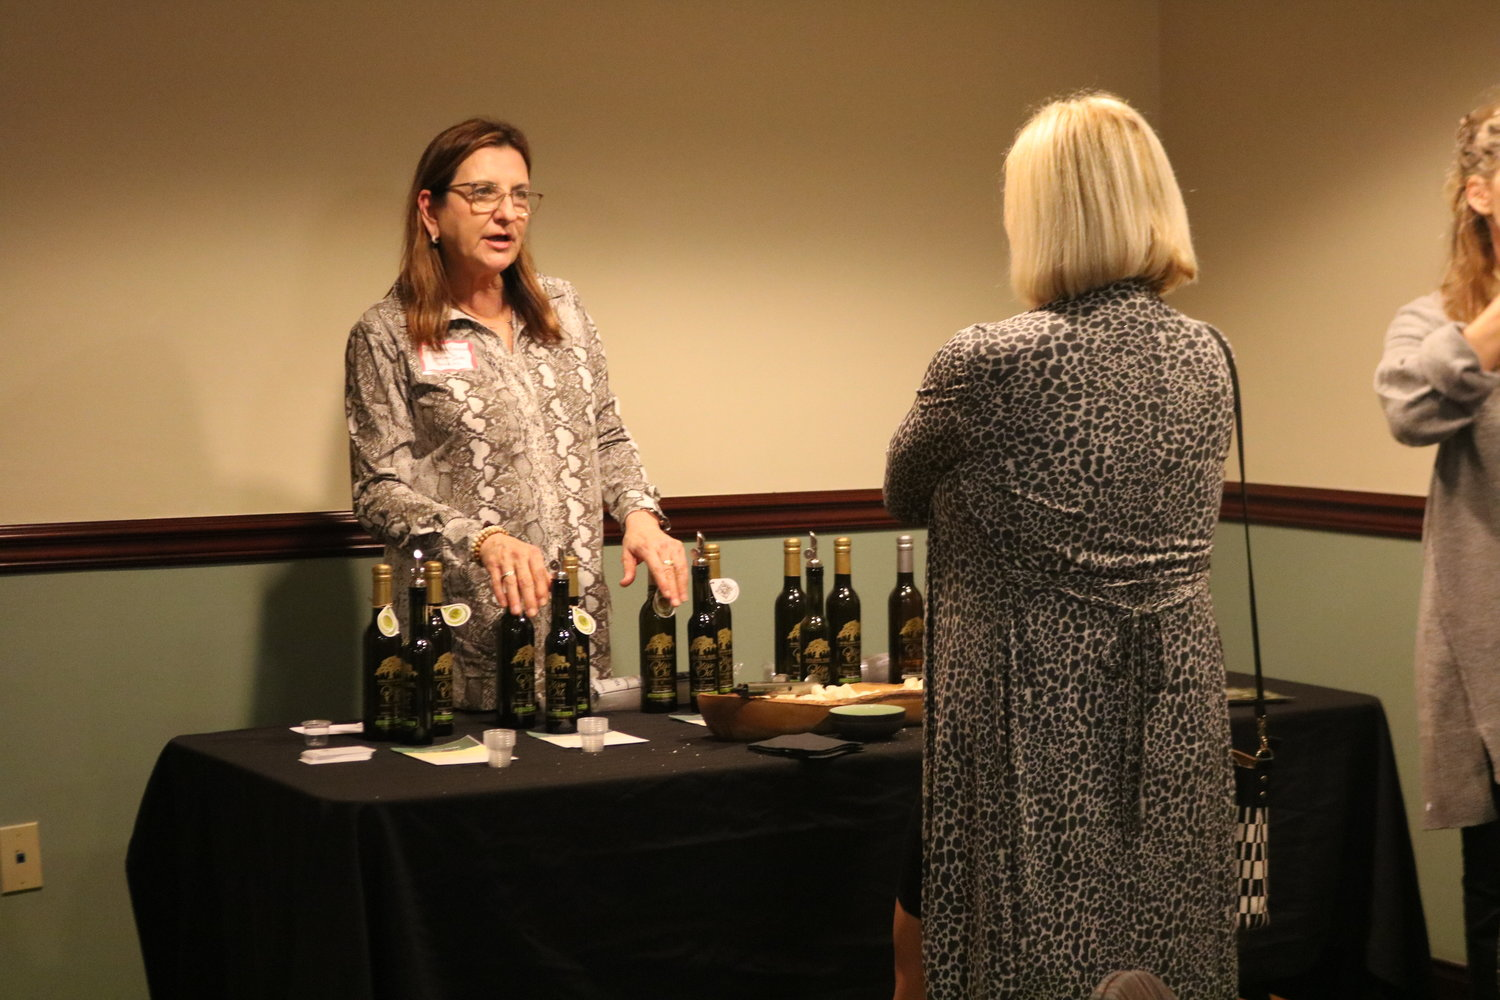 5.	Donna MacPherson explains the different types of olive oils of her Golden Isles business in St. Simons Island, Georgia.